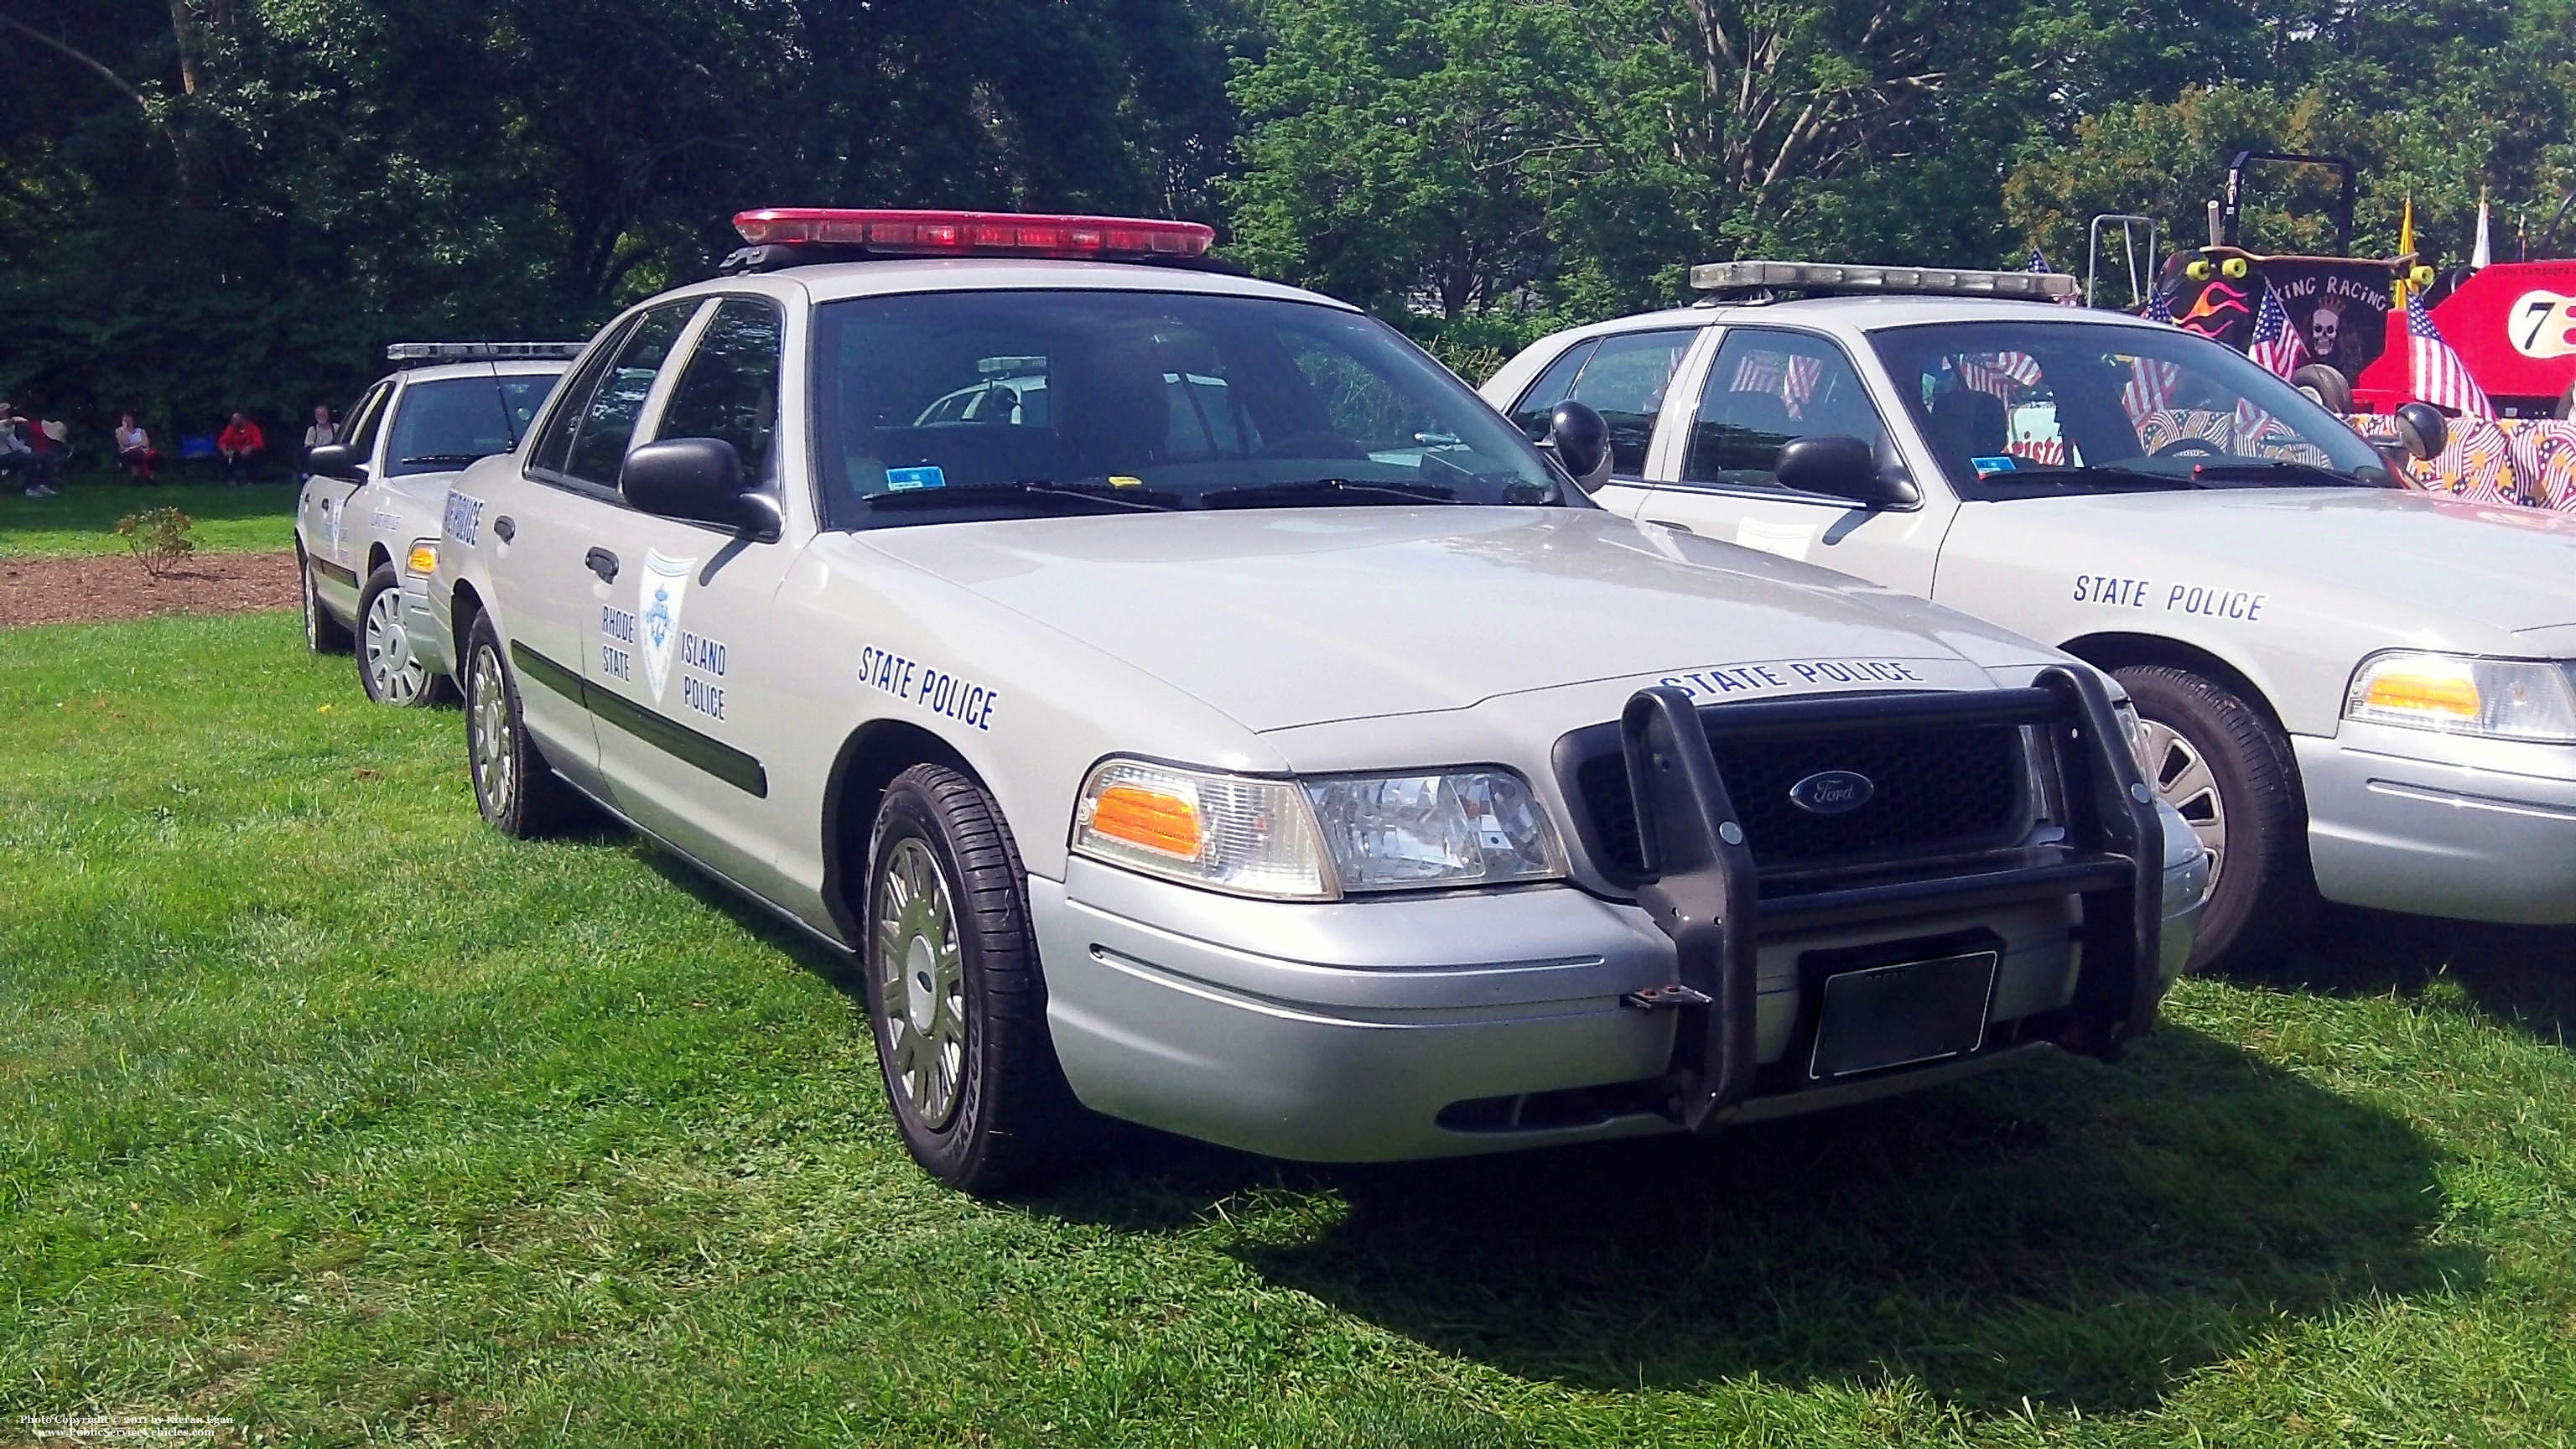 A photo  of Rhode Island State Police             Cruiser 61, a 2003-2005 Ford Crown Victoria Police Interceptor             taken by Kieran Egan